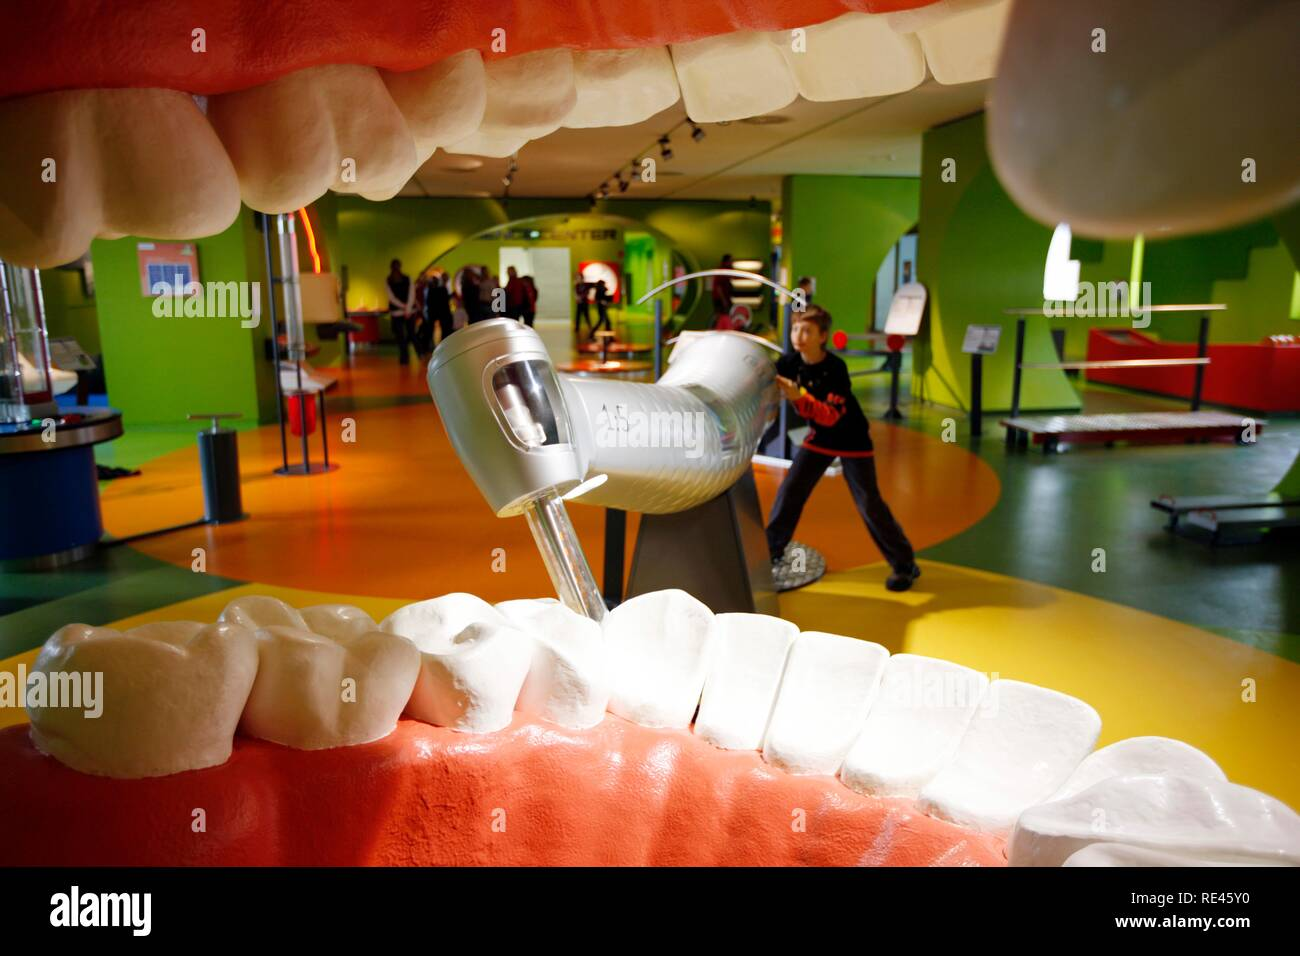 Haus der Natur museum, big teeth and model of a dentist's